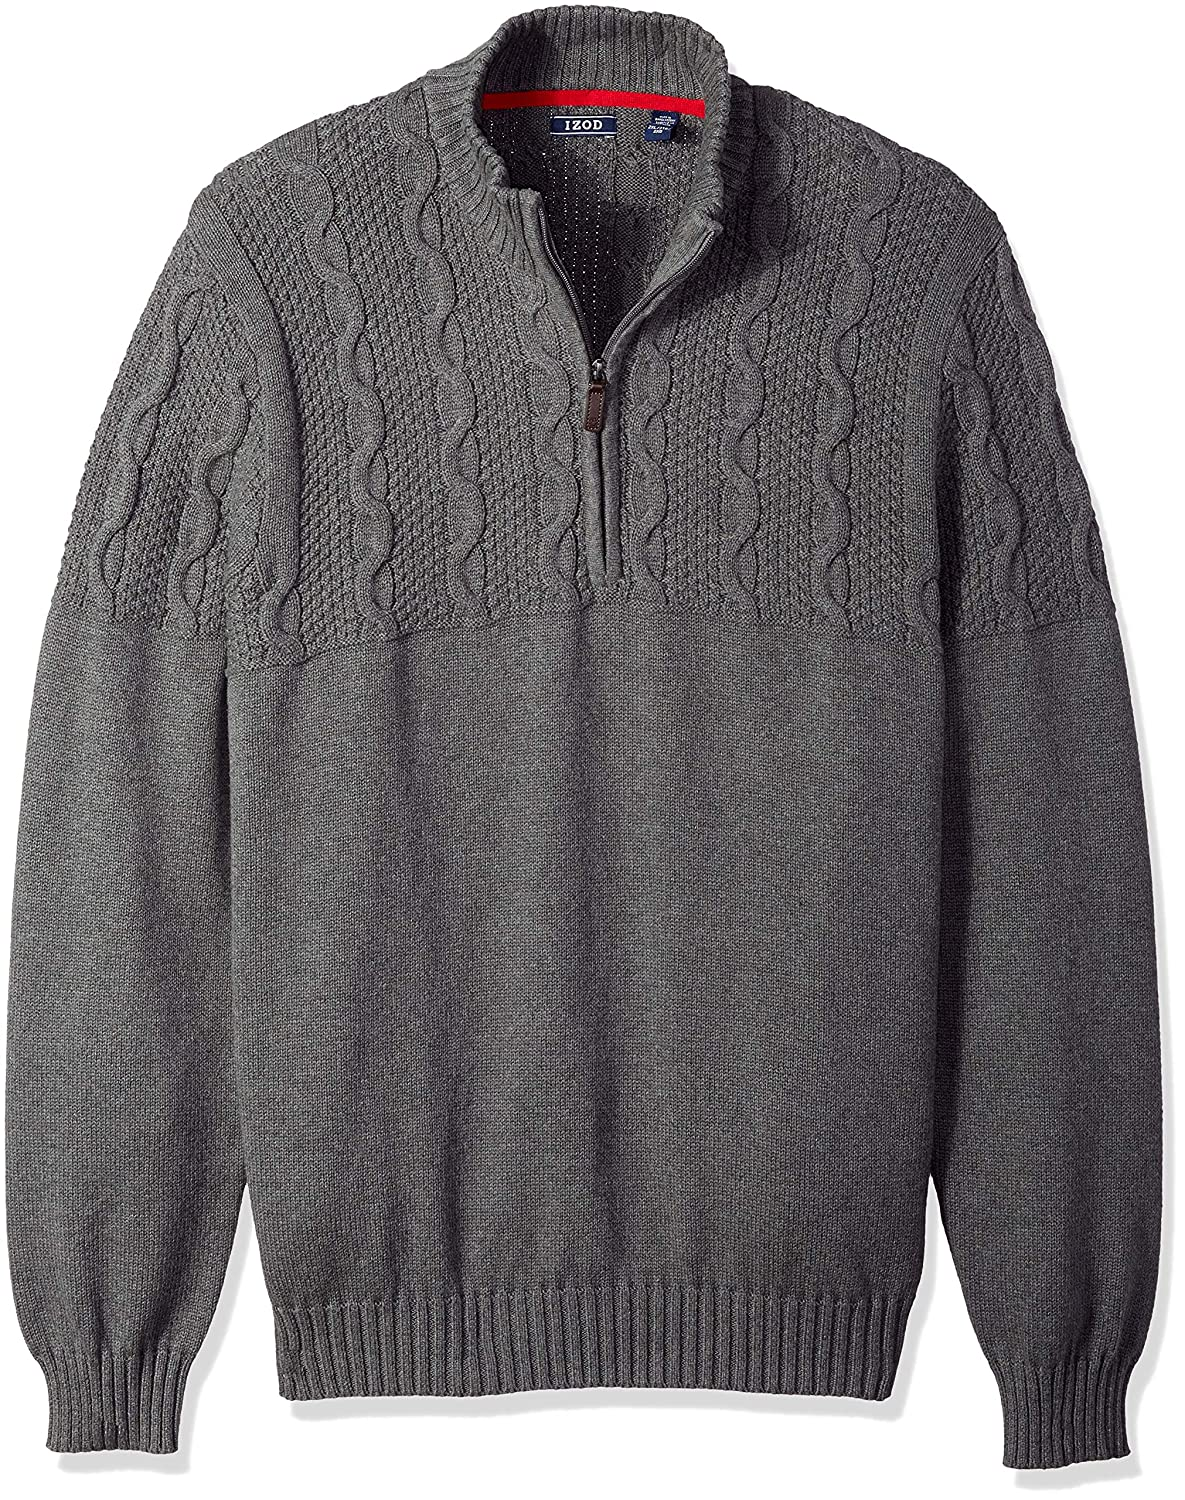 IZOD Men's Big and Tall Holiday 1/4 Zip Sweater, 45IS019